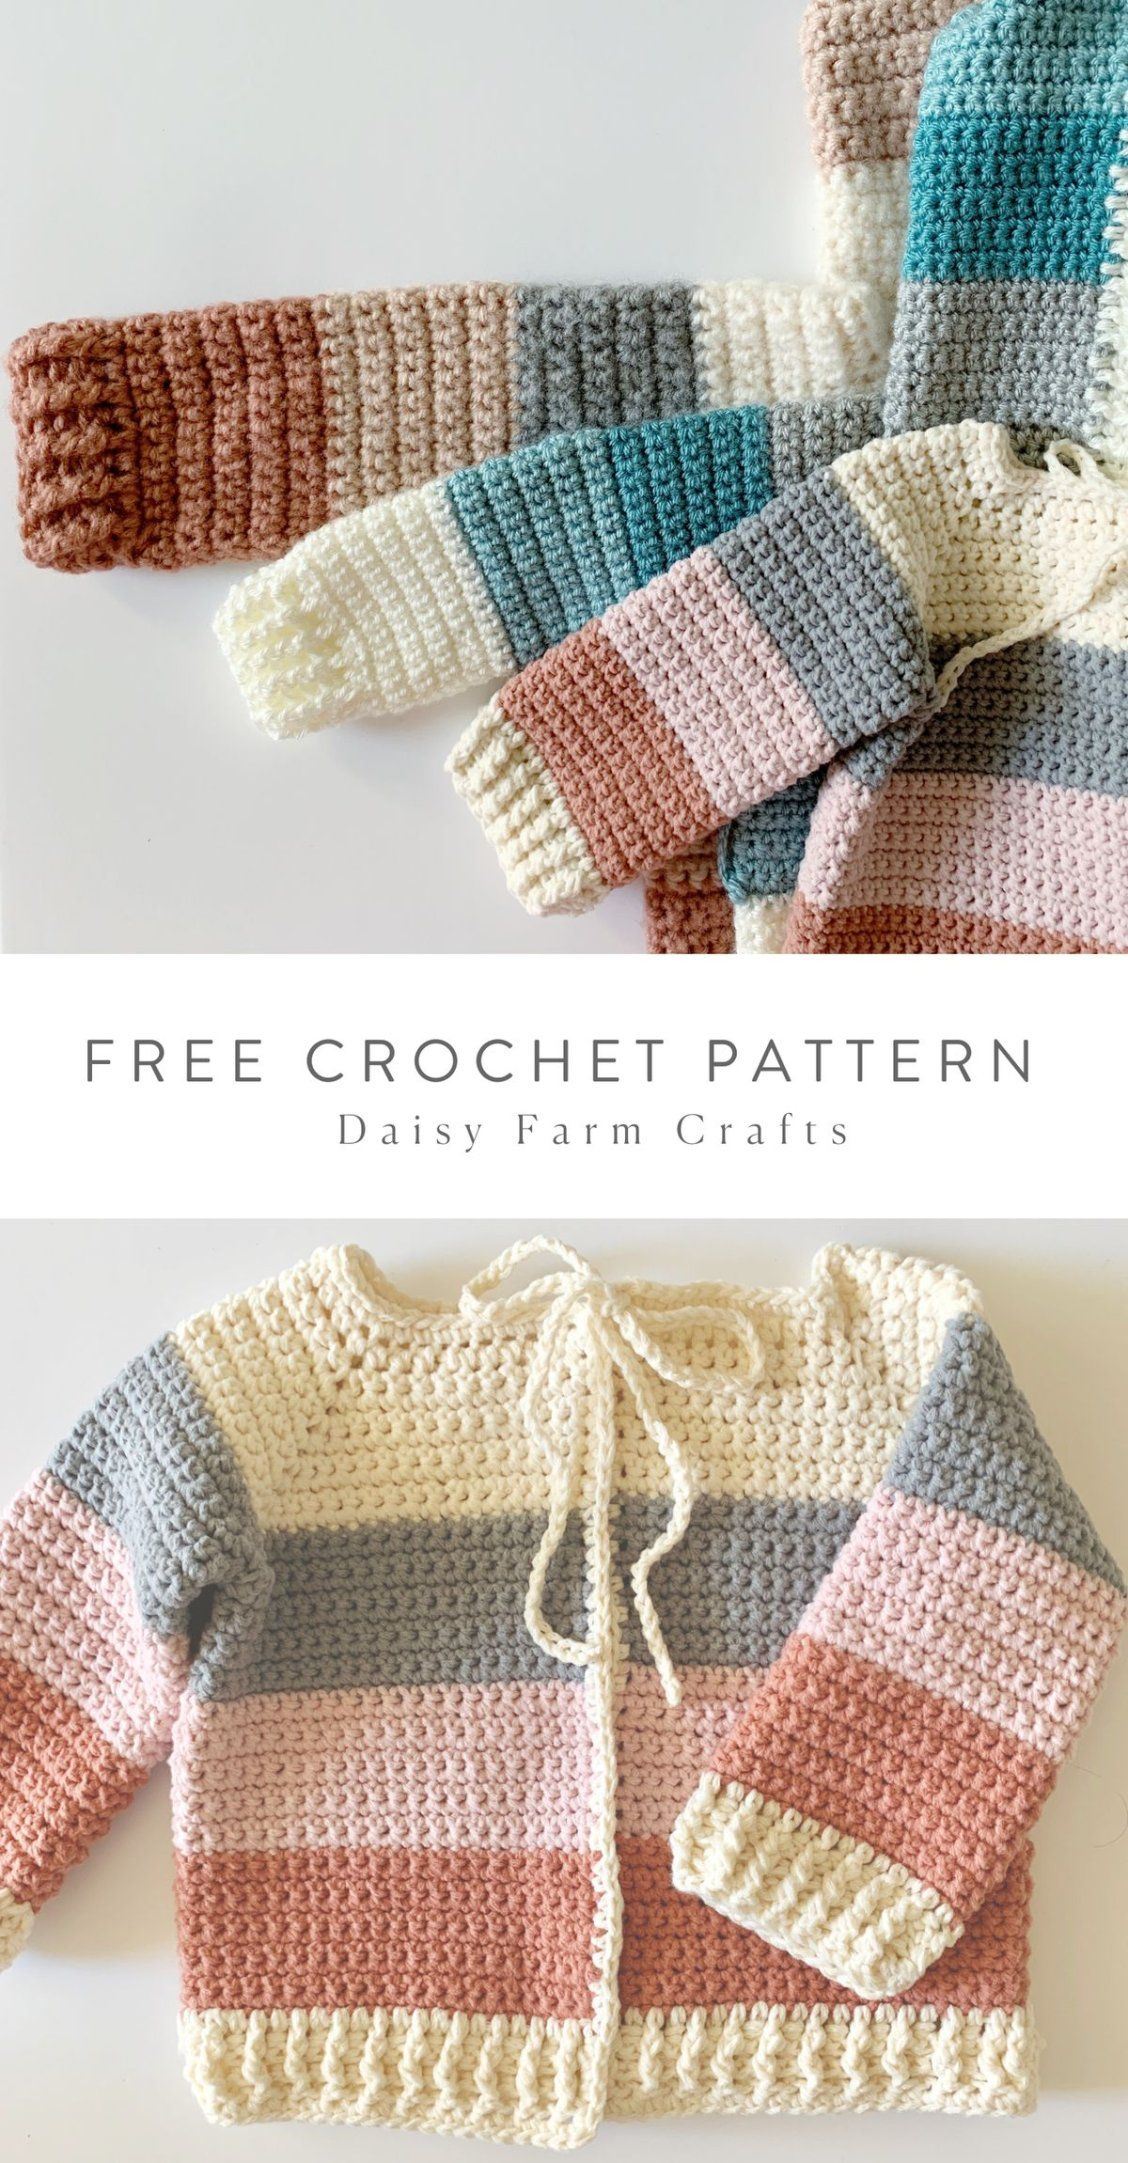 Free Crochet Pattern - Four Color Baby Sweater - Free Crochet Pattern in Red Heart Amore